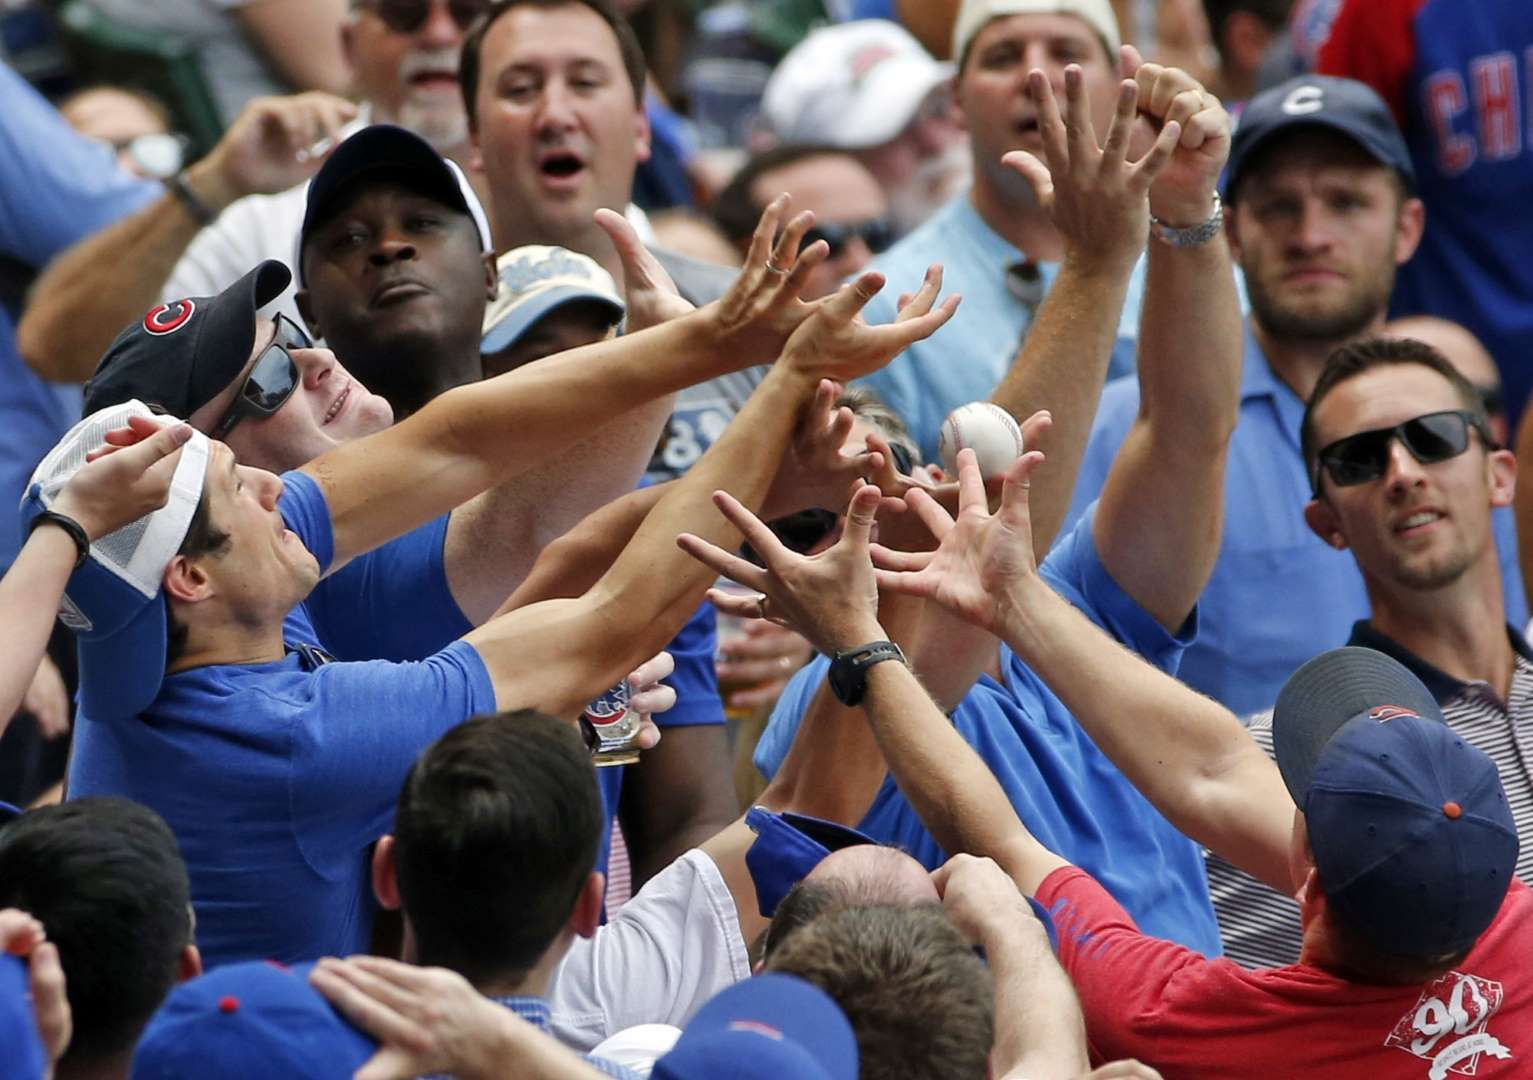 I Got It Fans Battle For A Foul Ball Hit By Chicago Cubs Kyle Hendricks During The Fifth Inning Against The New York Mets O New York Mets Baseball Season Mlb